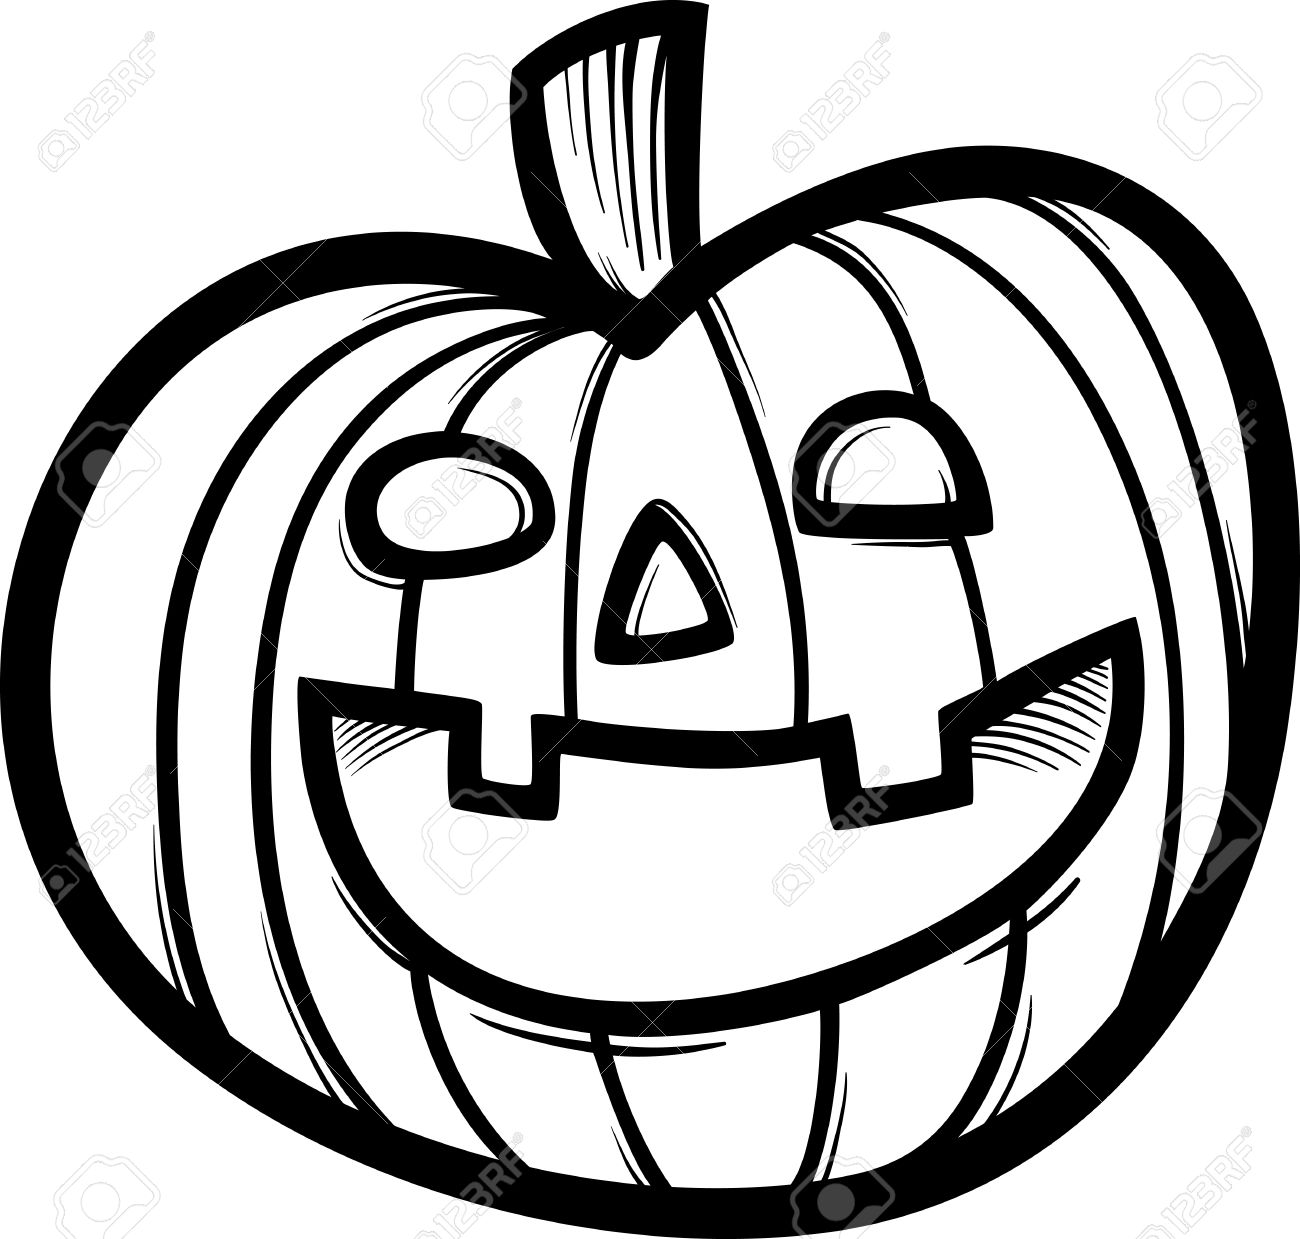 hight resolution of black and white cartoon illustration of spooky halloween pumpkin clip art for coloring book stock vector